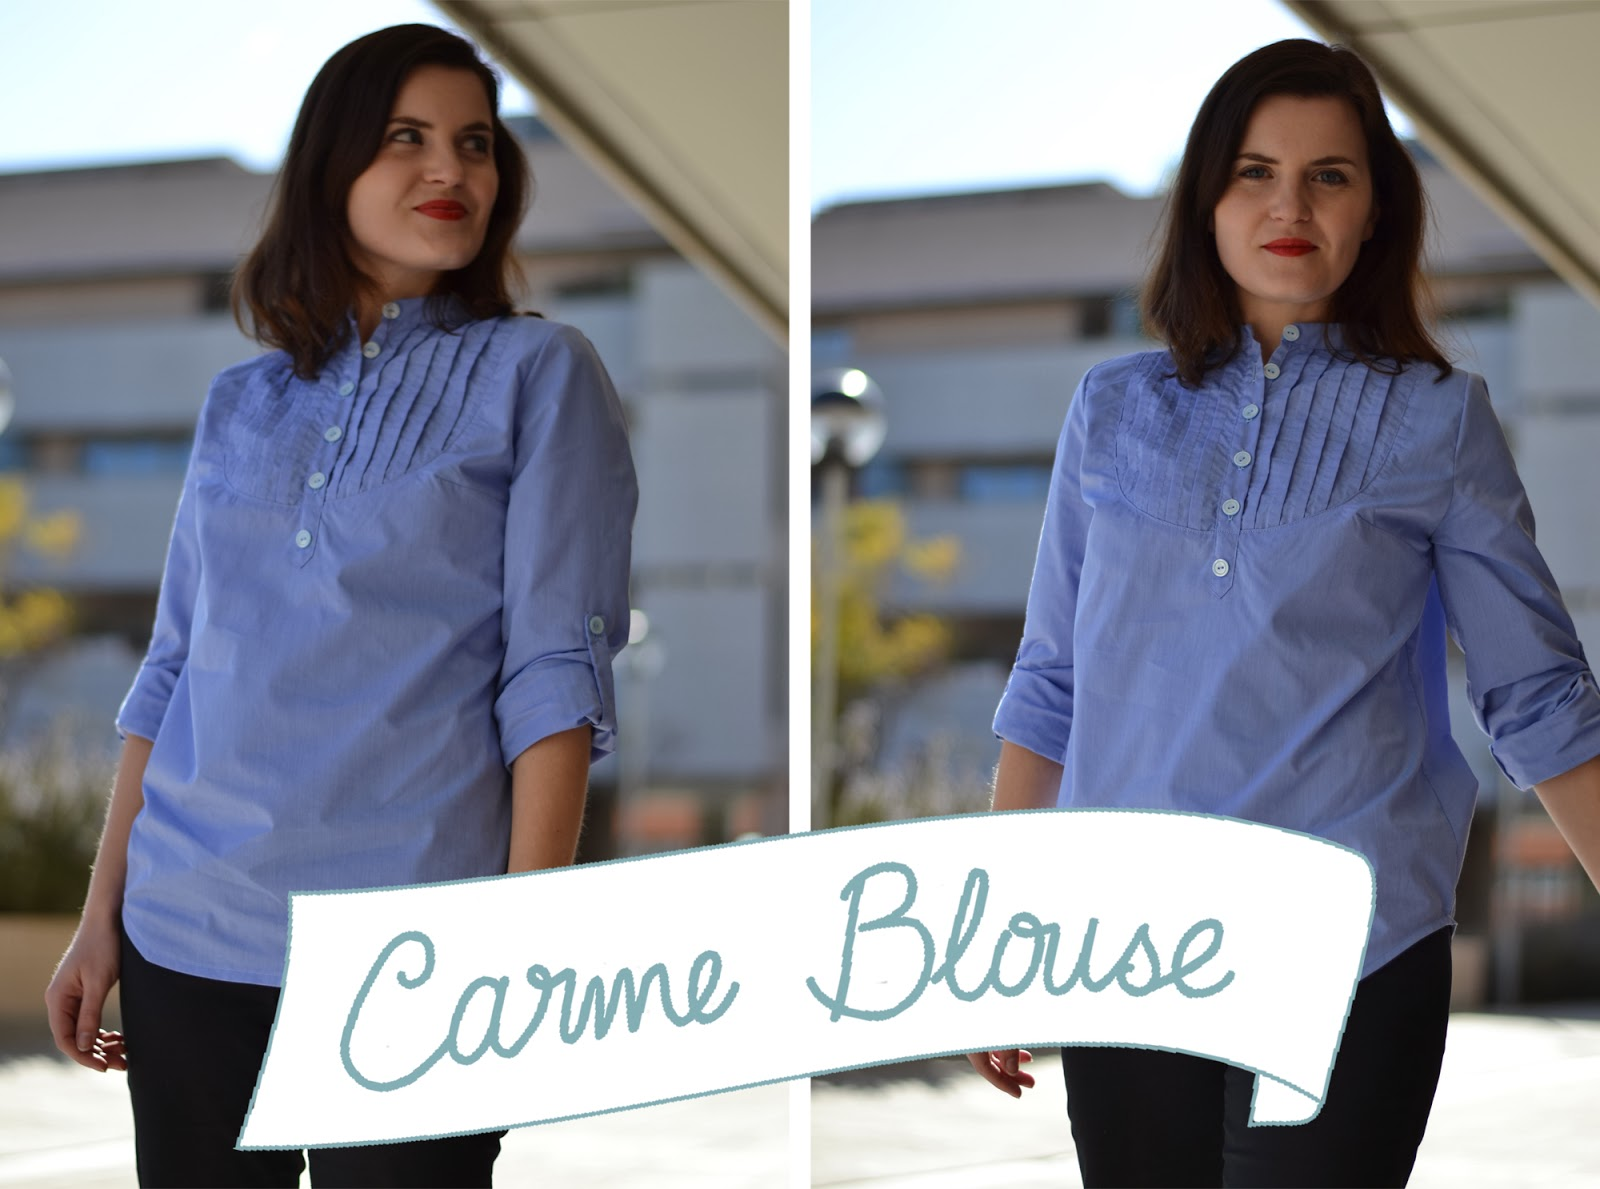 carme blouse pattern, blouse pattern, pauline alice, pin tuck, yoke, button placket, sleeve tab